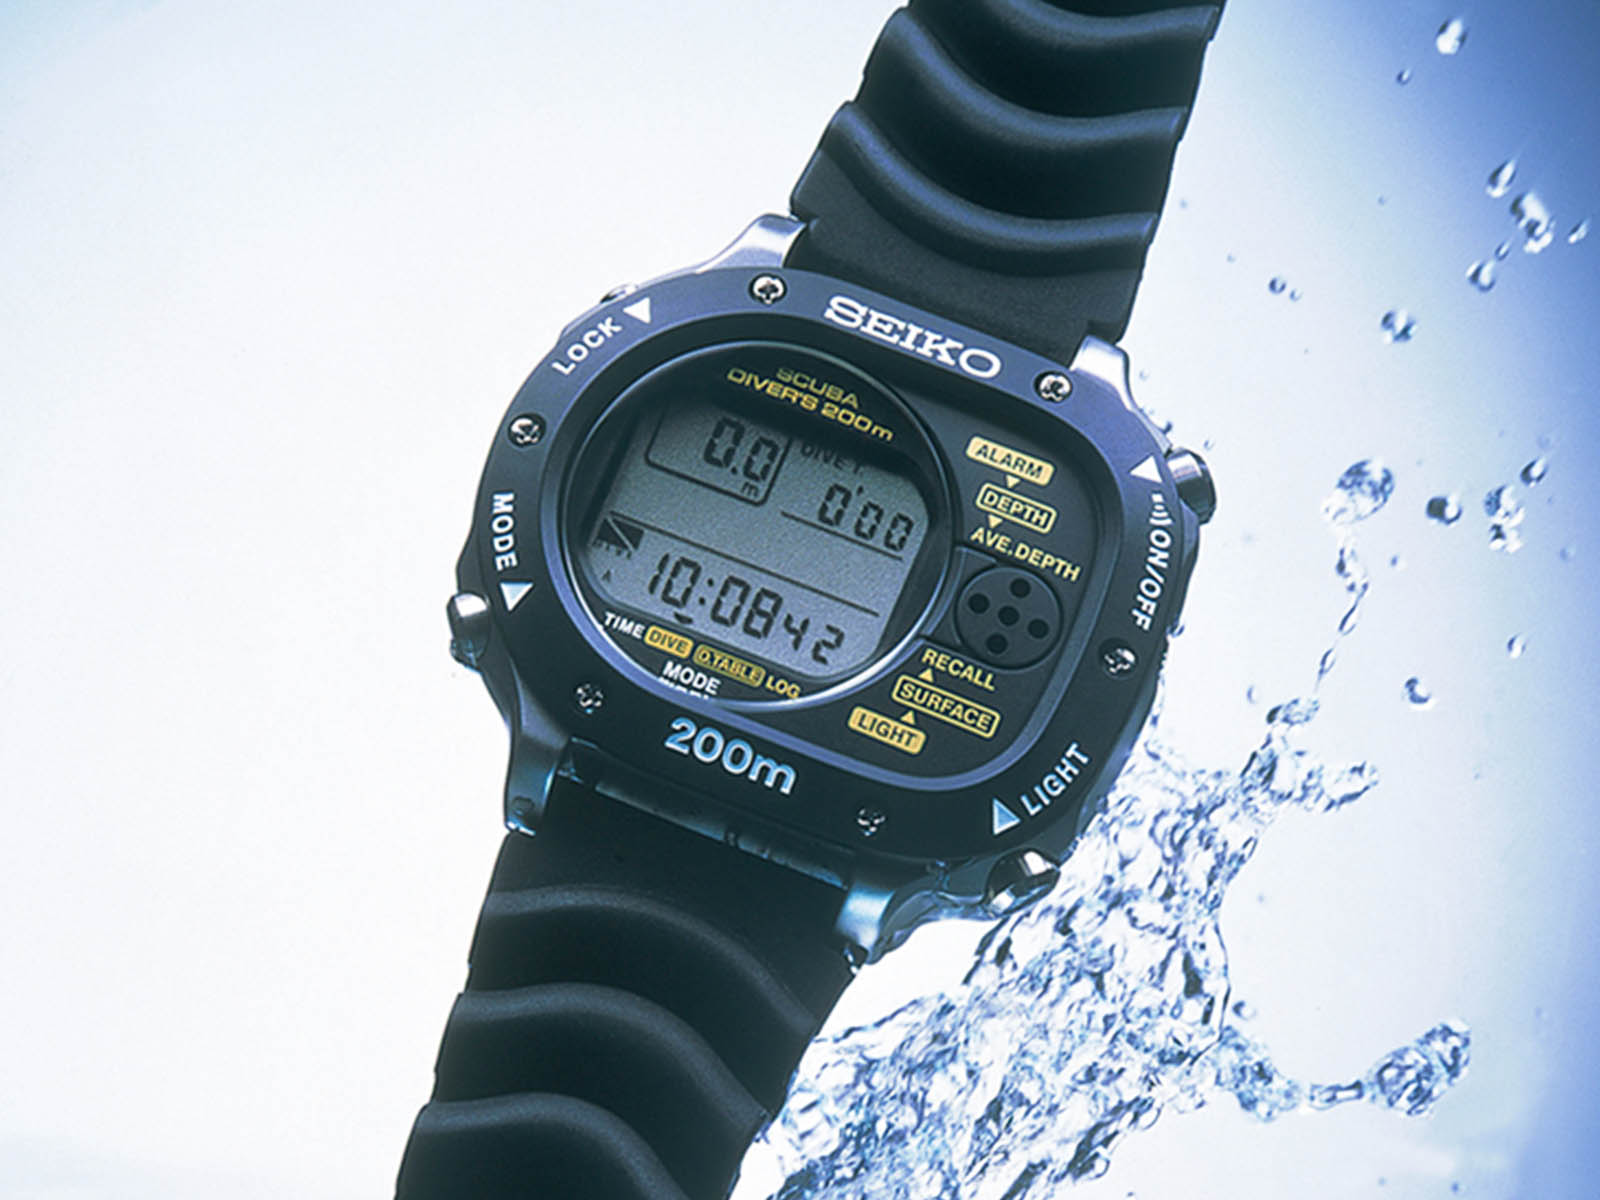 seiko-scubamaster-cal-m726-the-world-s-first-computerized-diver-s-watch-1990.jpg